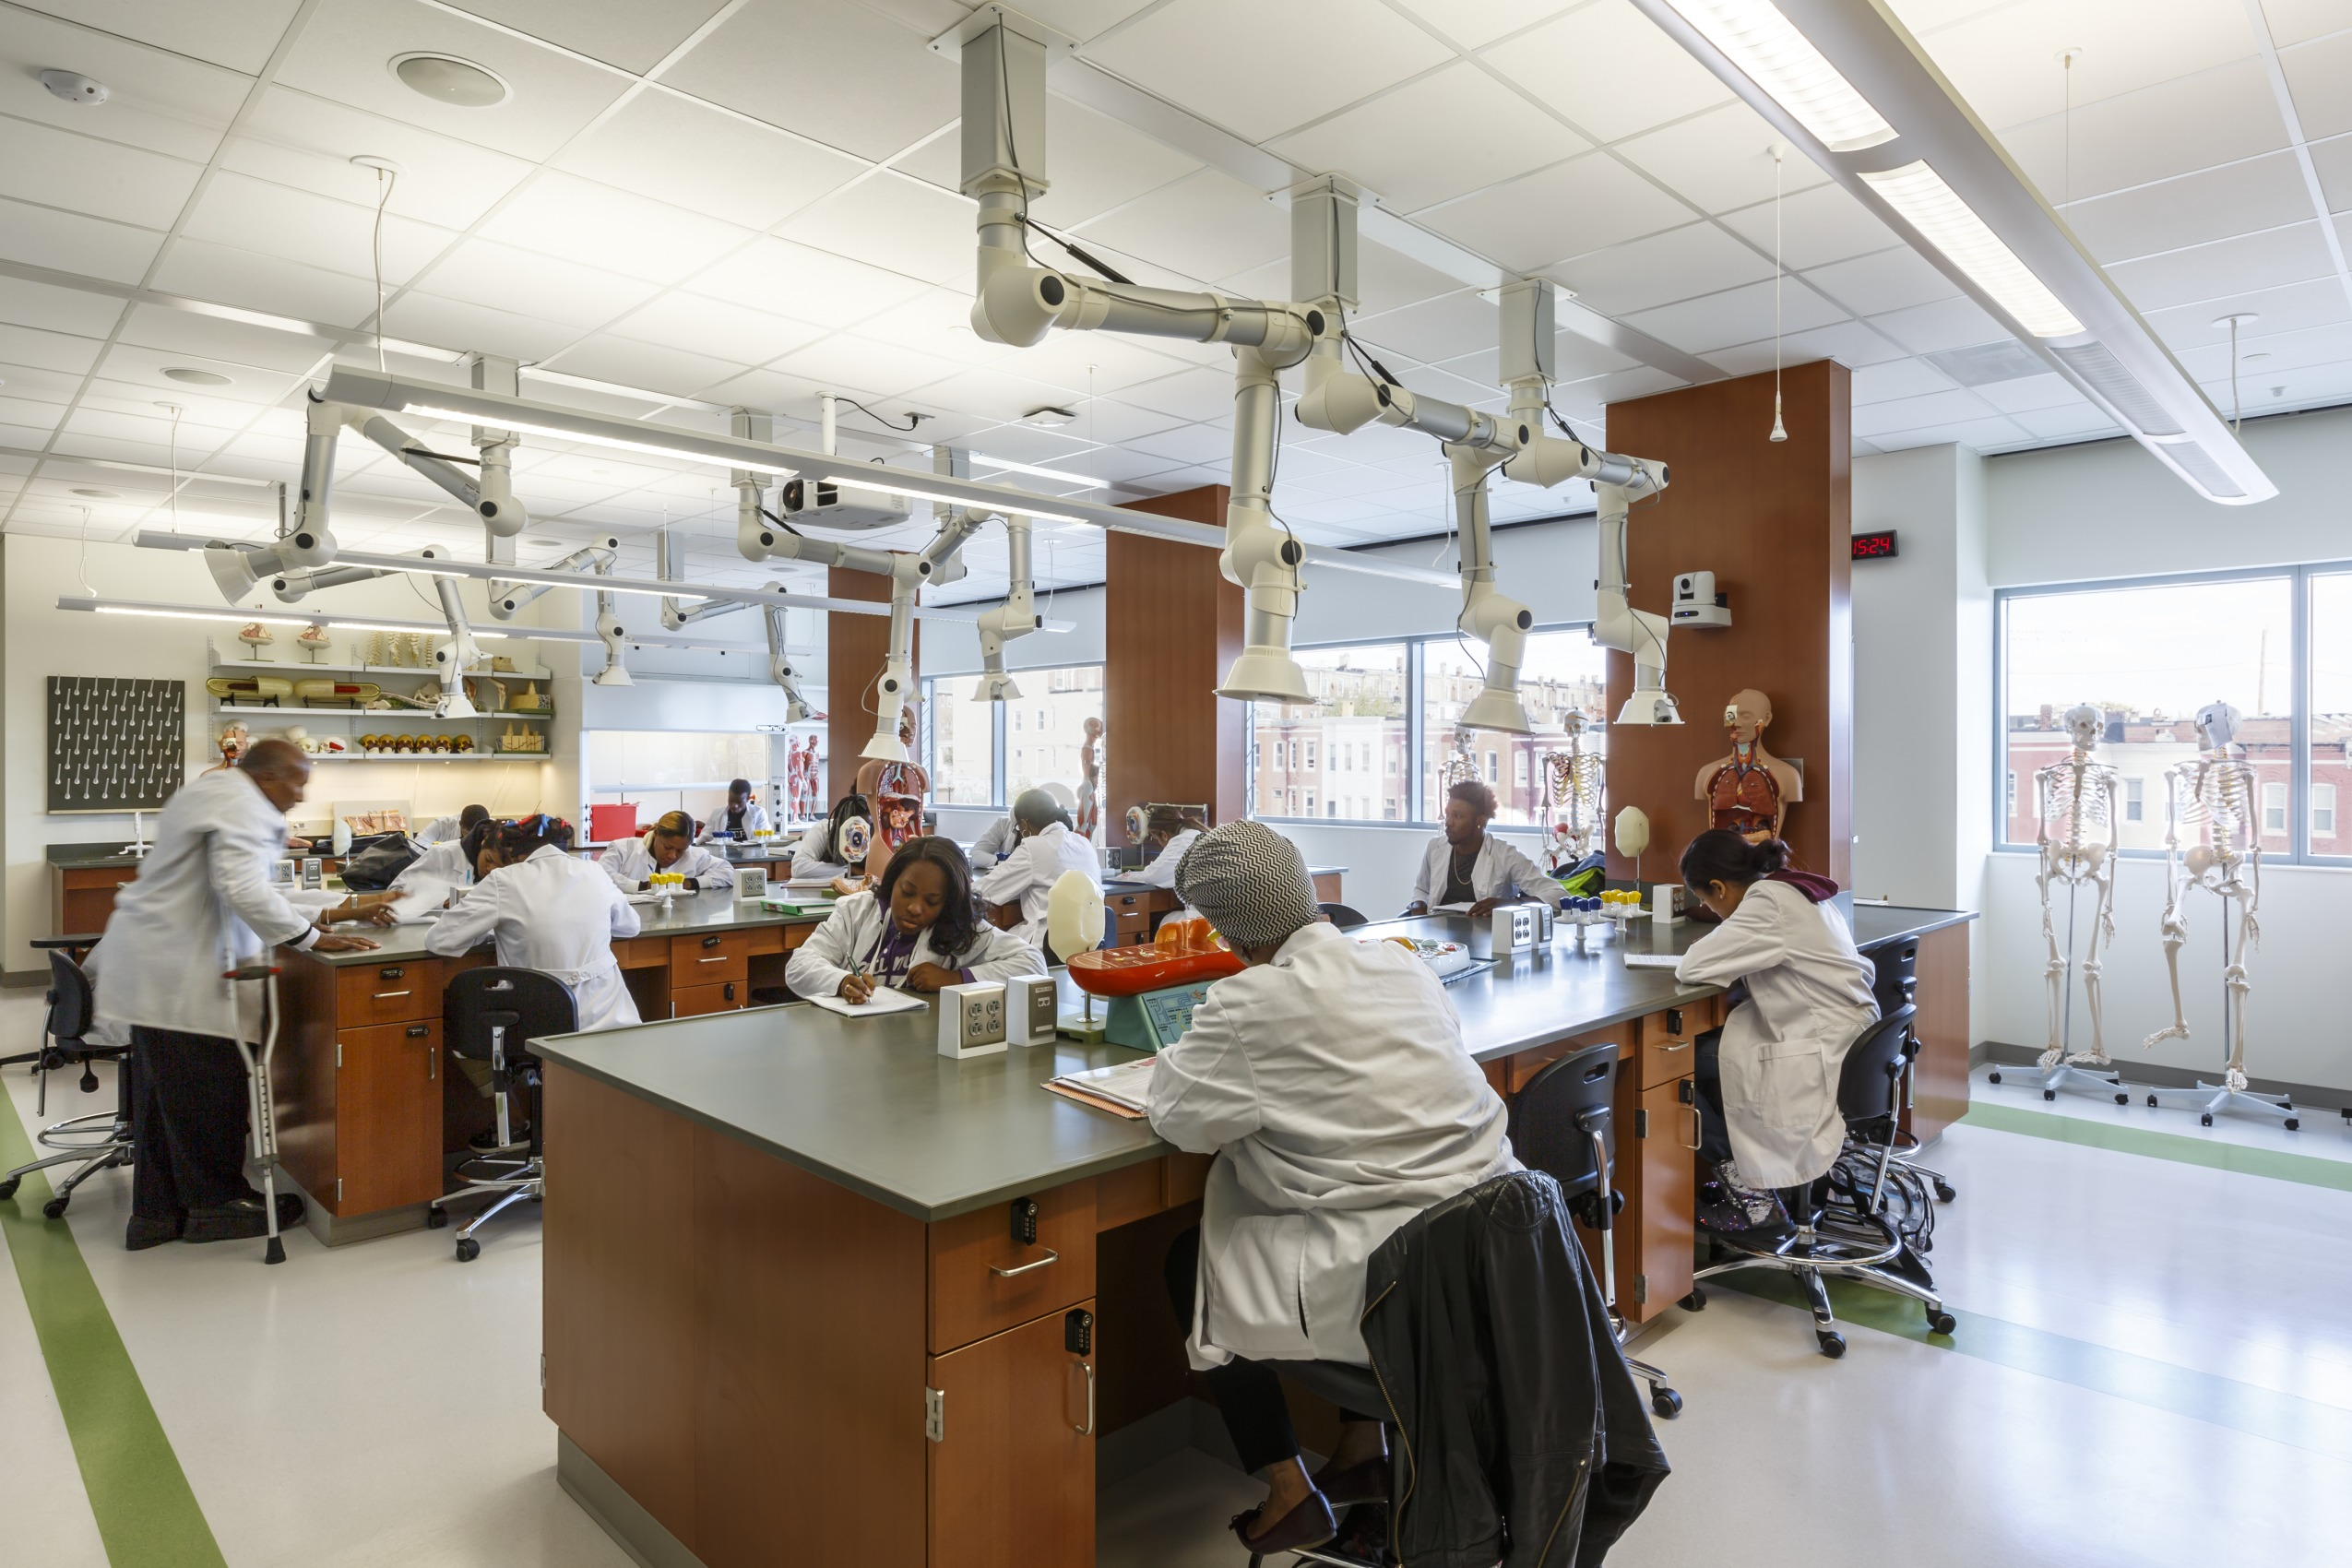 Lab Design Newsletter Profiles Coppin State Stem Facility